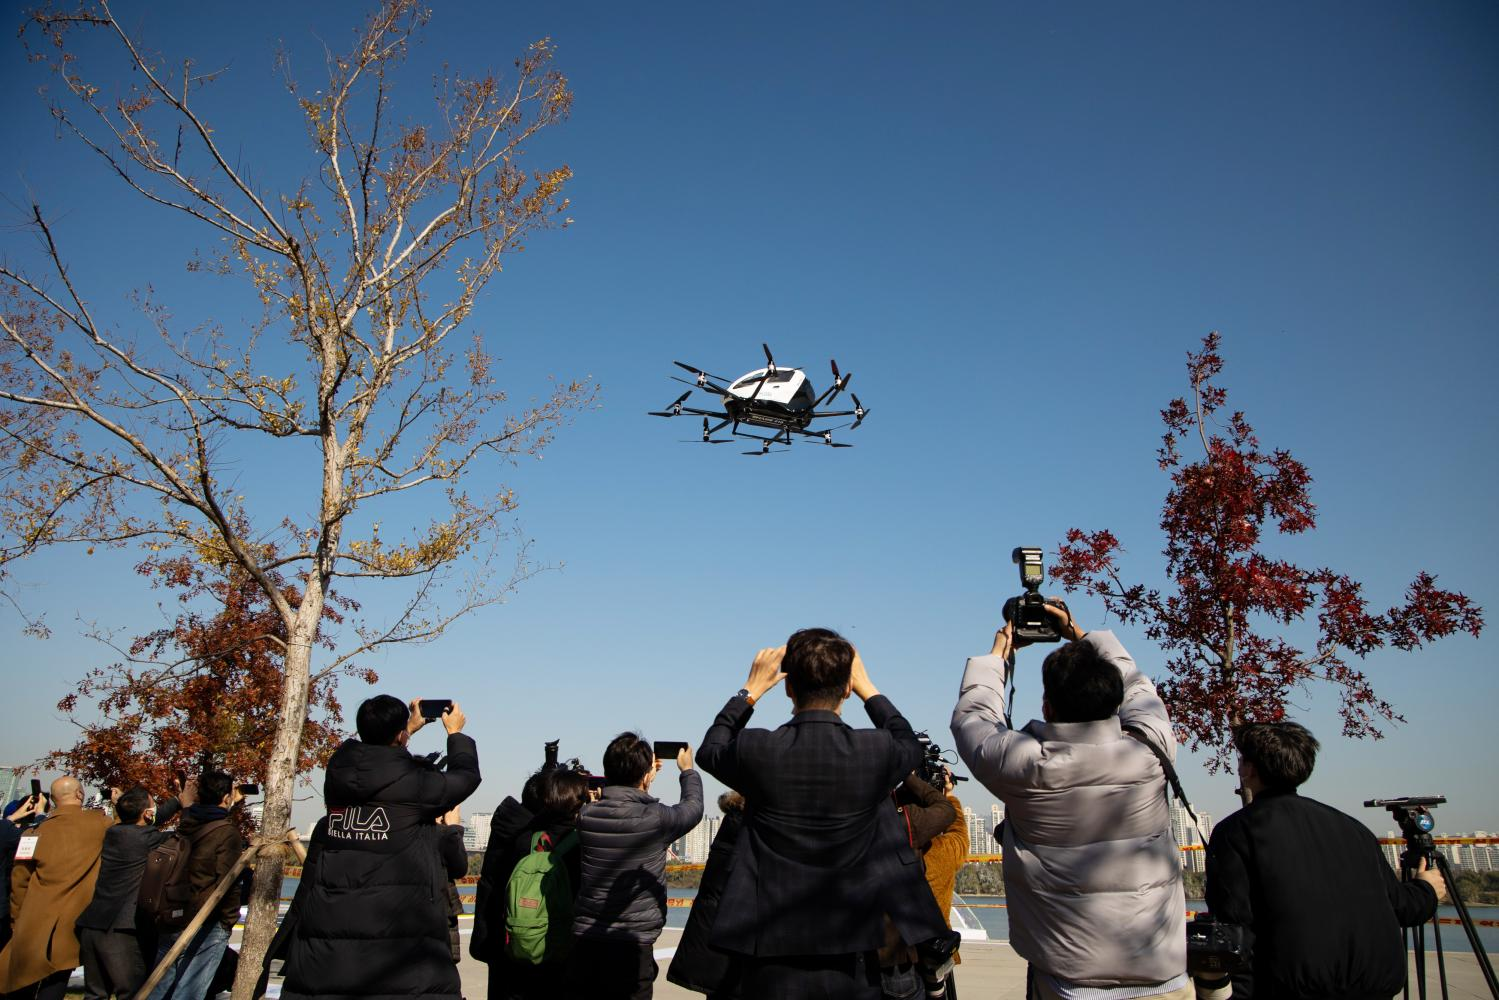 Members of media take photographs and film the EHang 216 during a demonstration in Seoul on Wednesday. (Bloomberg photo)